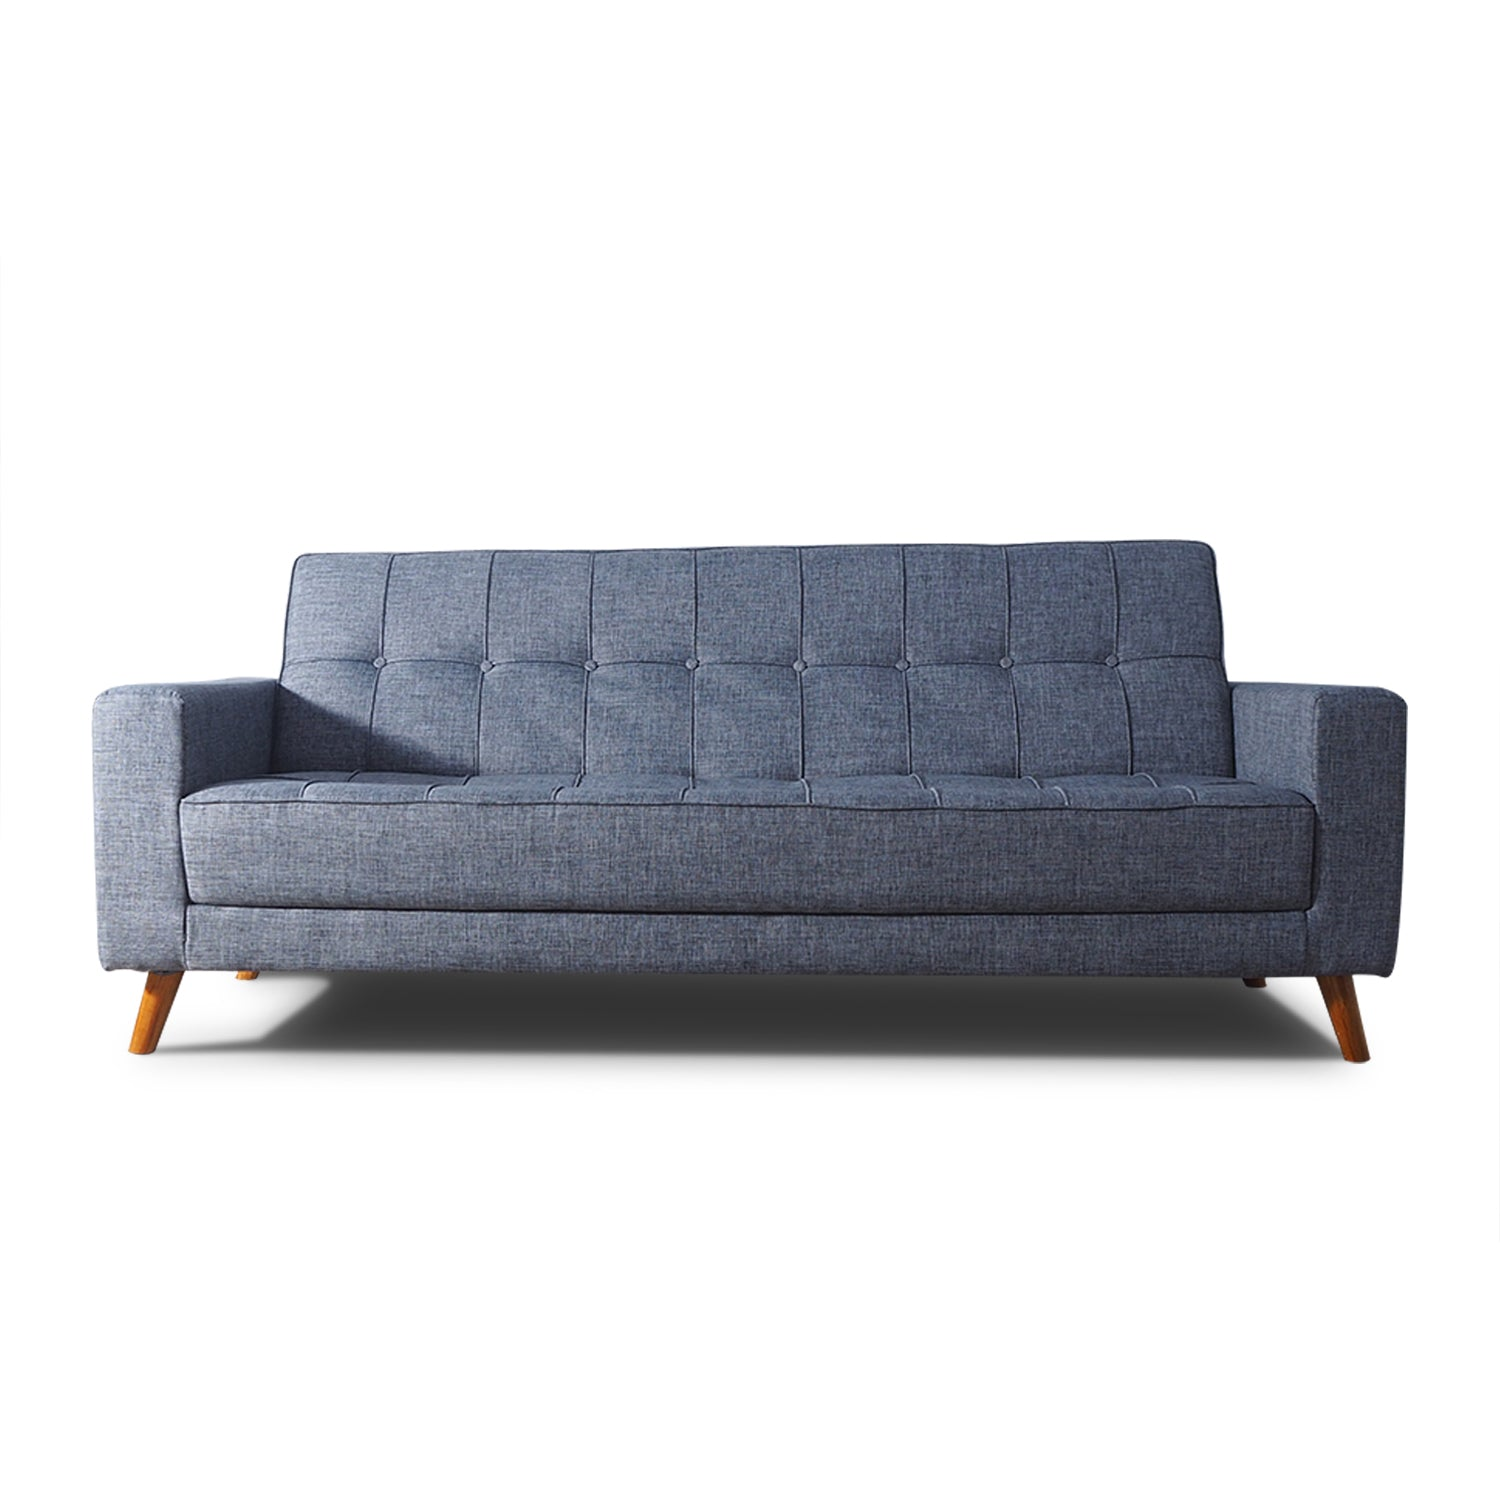 Sofa Bed 101 Grey